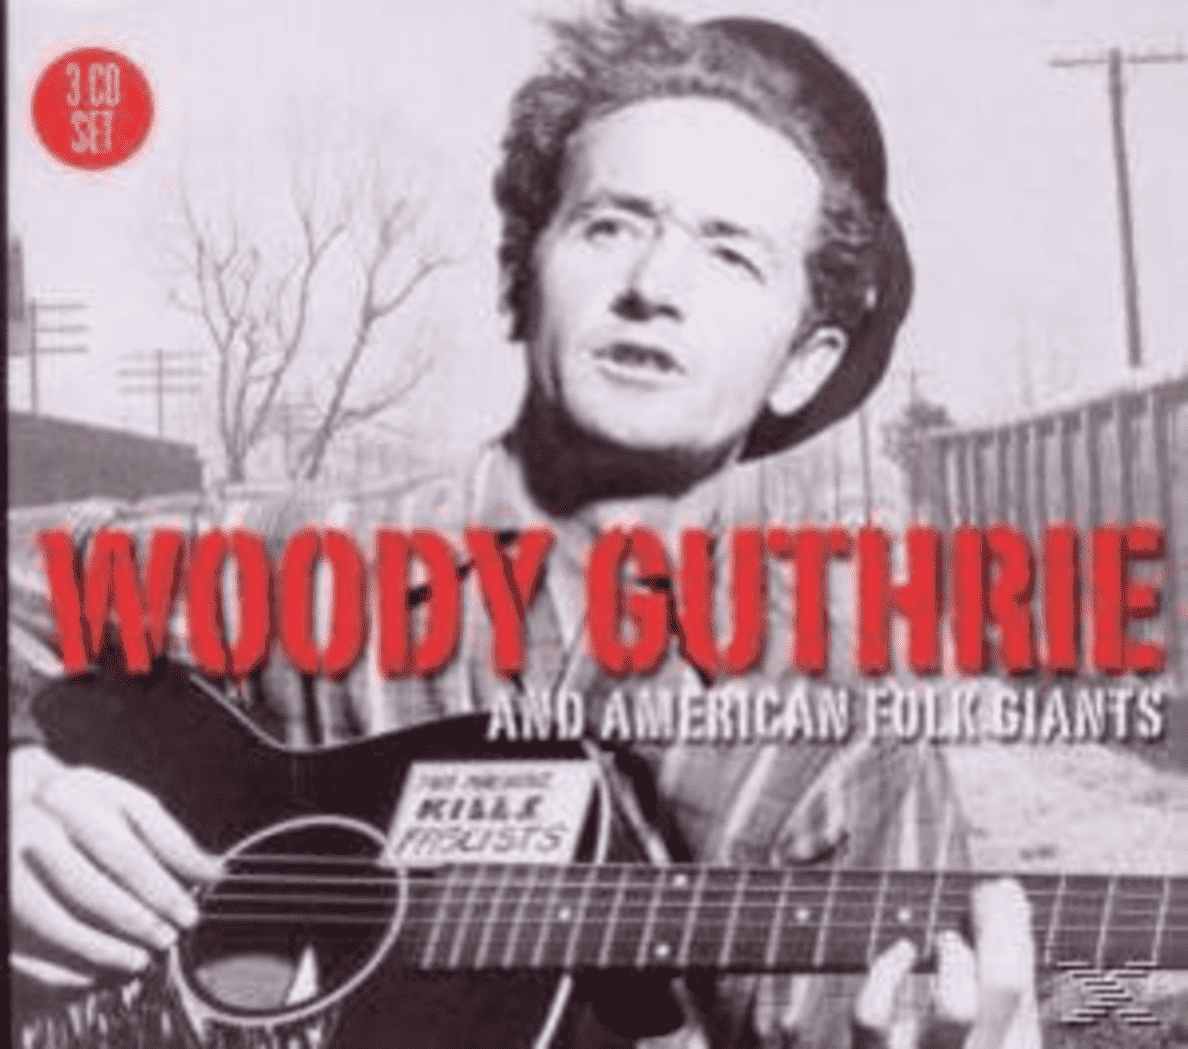 Woody Guthrie & American Folk Giants Woody Guthrie auf CD